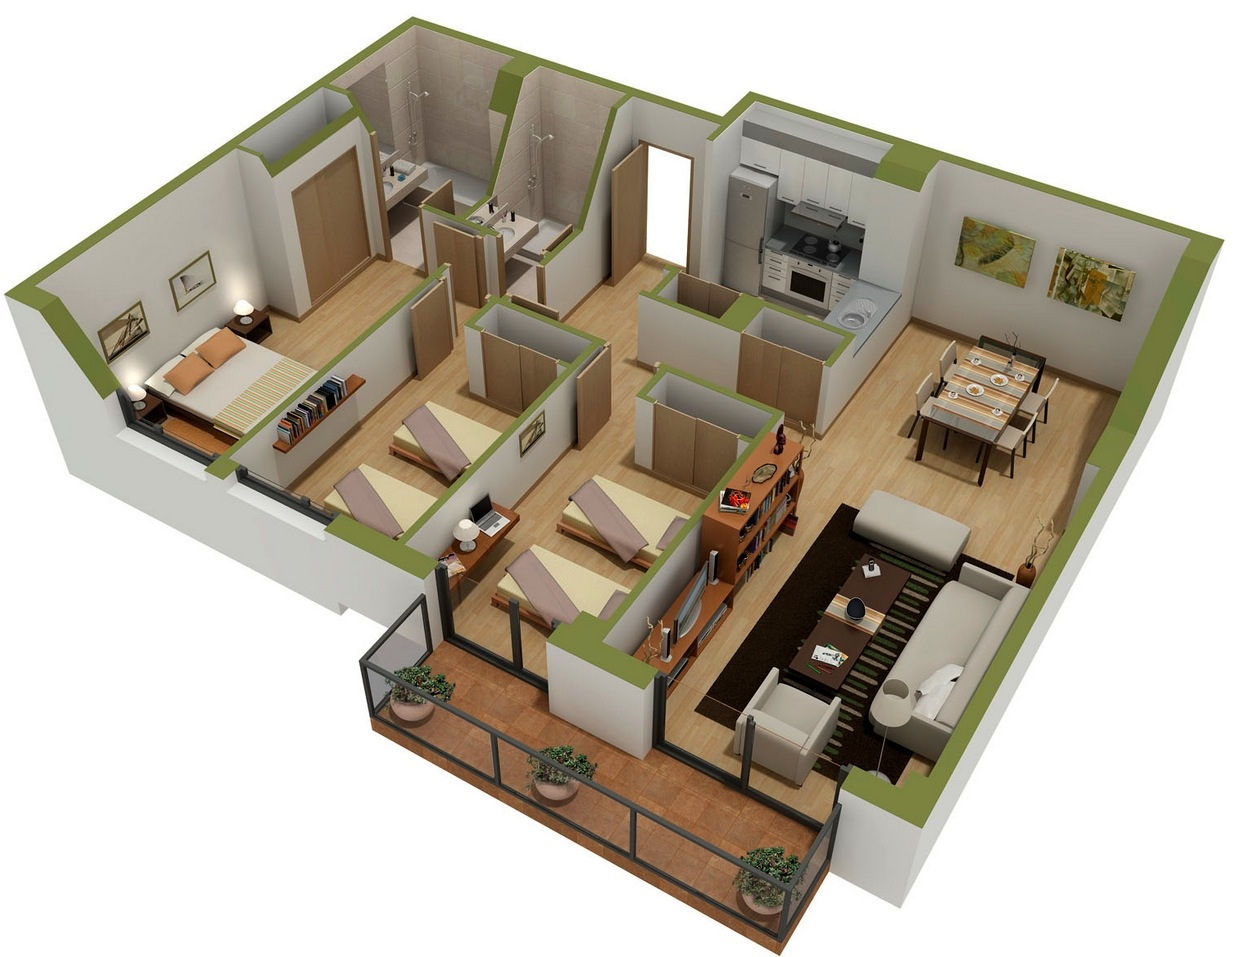 25 three bedroom houseapartment floor plans - Designing A Home